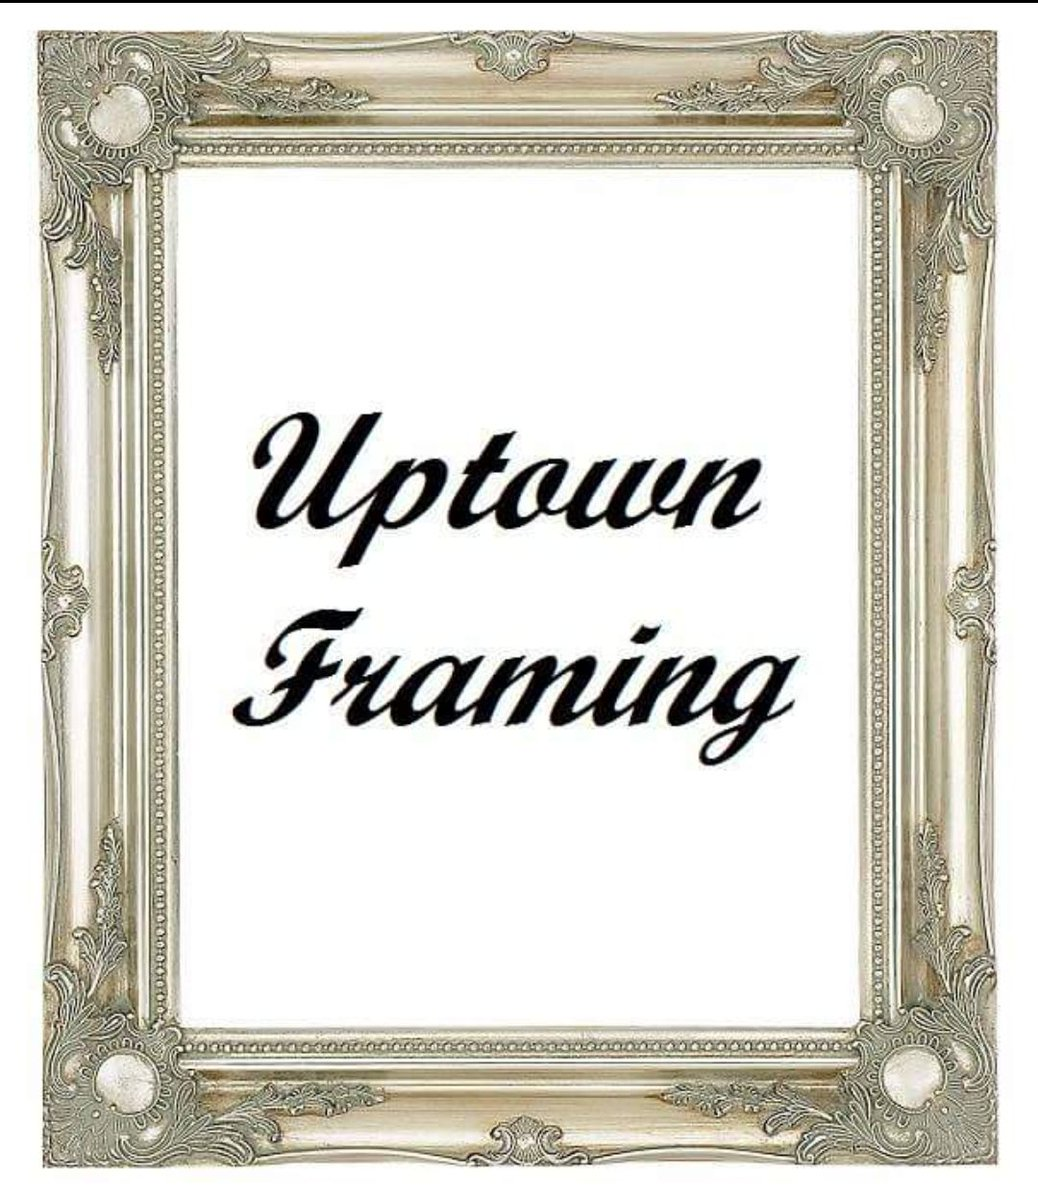 Uptown Framing (@UptownFraming) | Twitter